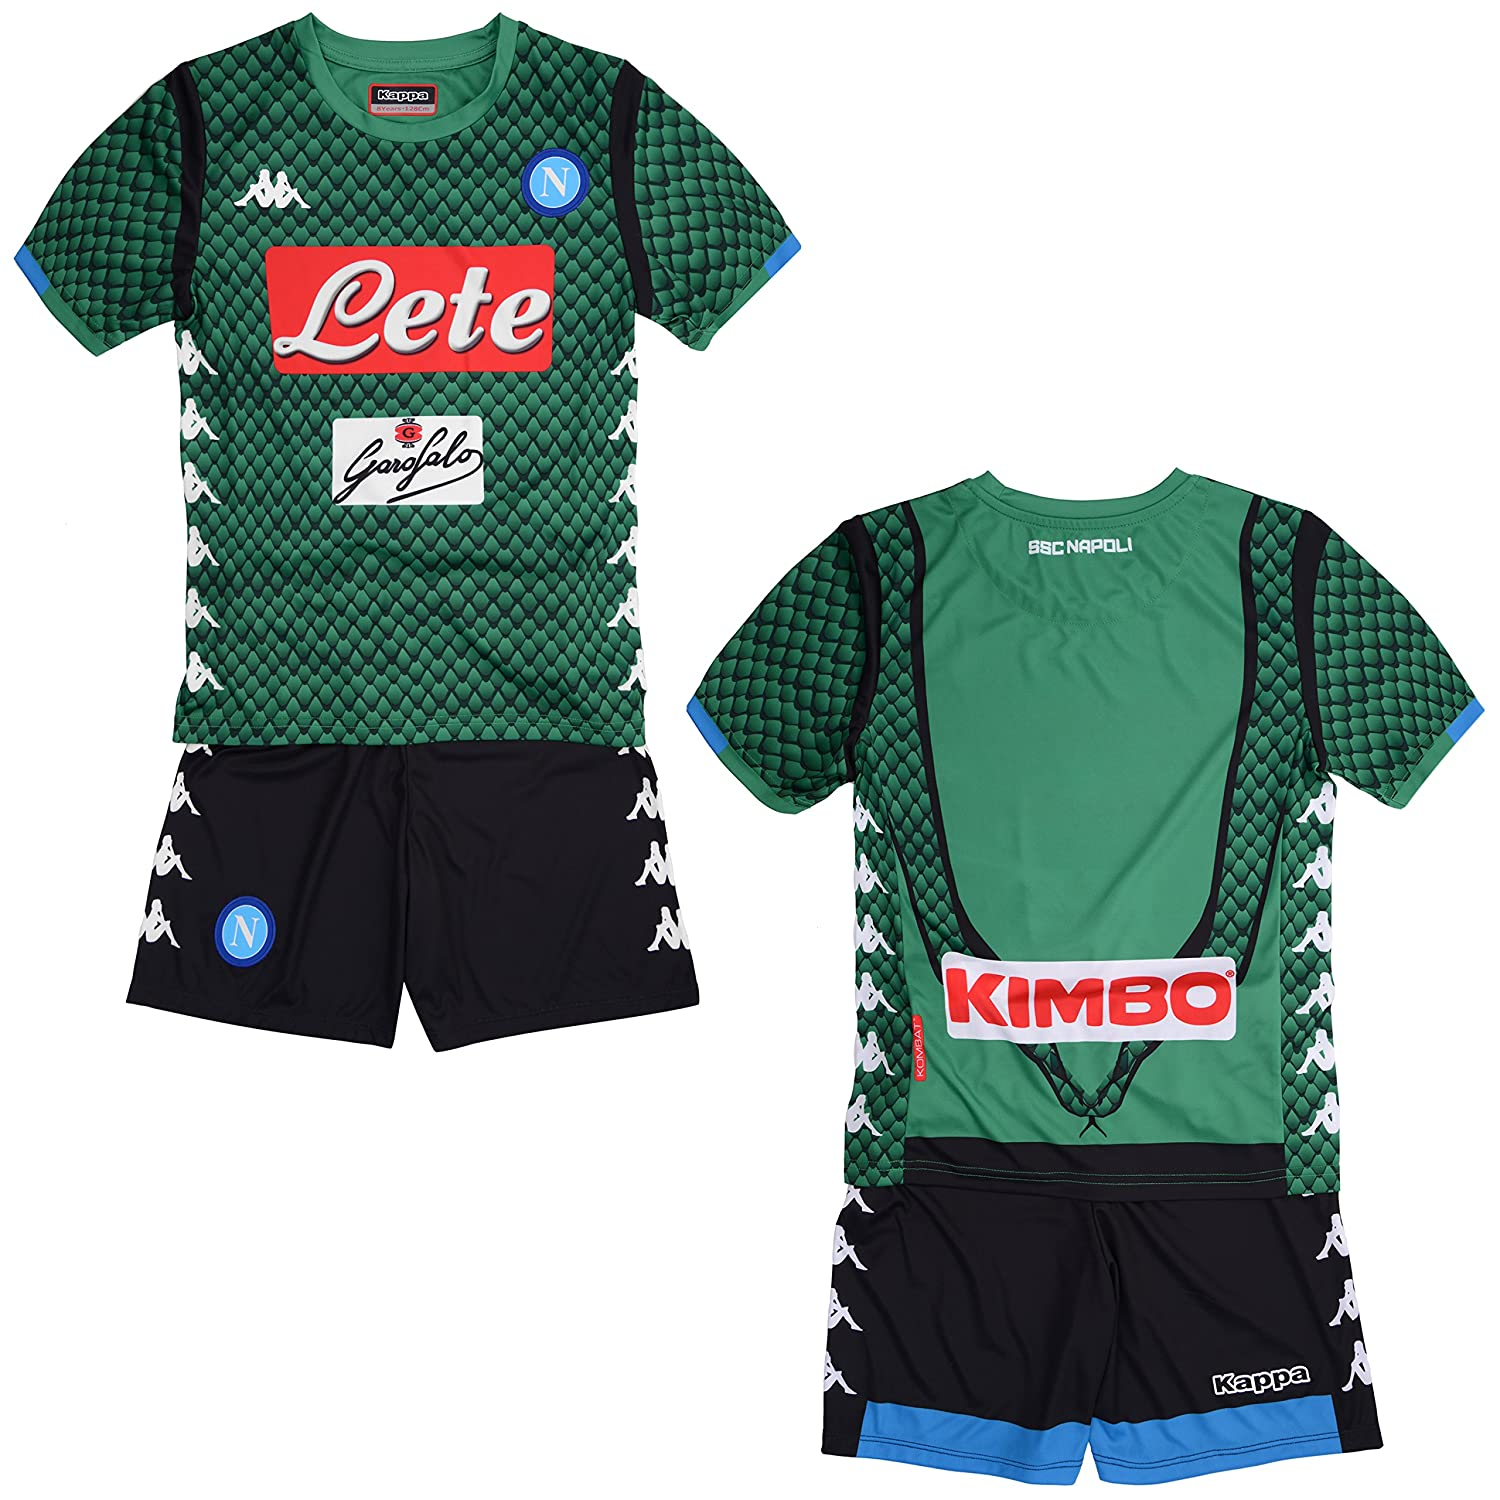 8e55510f9f7 SSC Napoli junior goalkeeper match kit  Amazon.co.uk  Sports   Outdoors